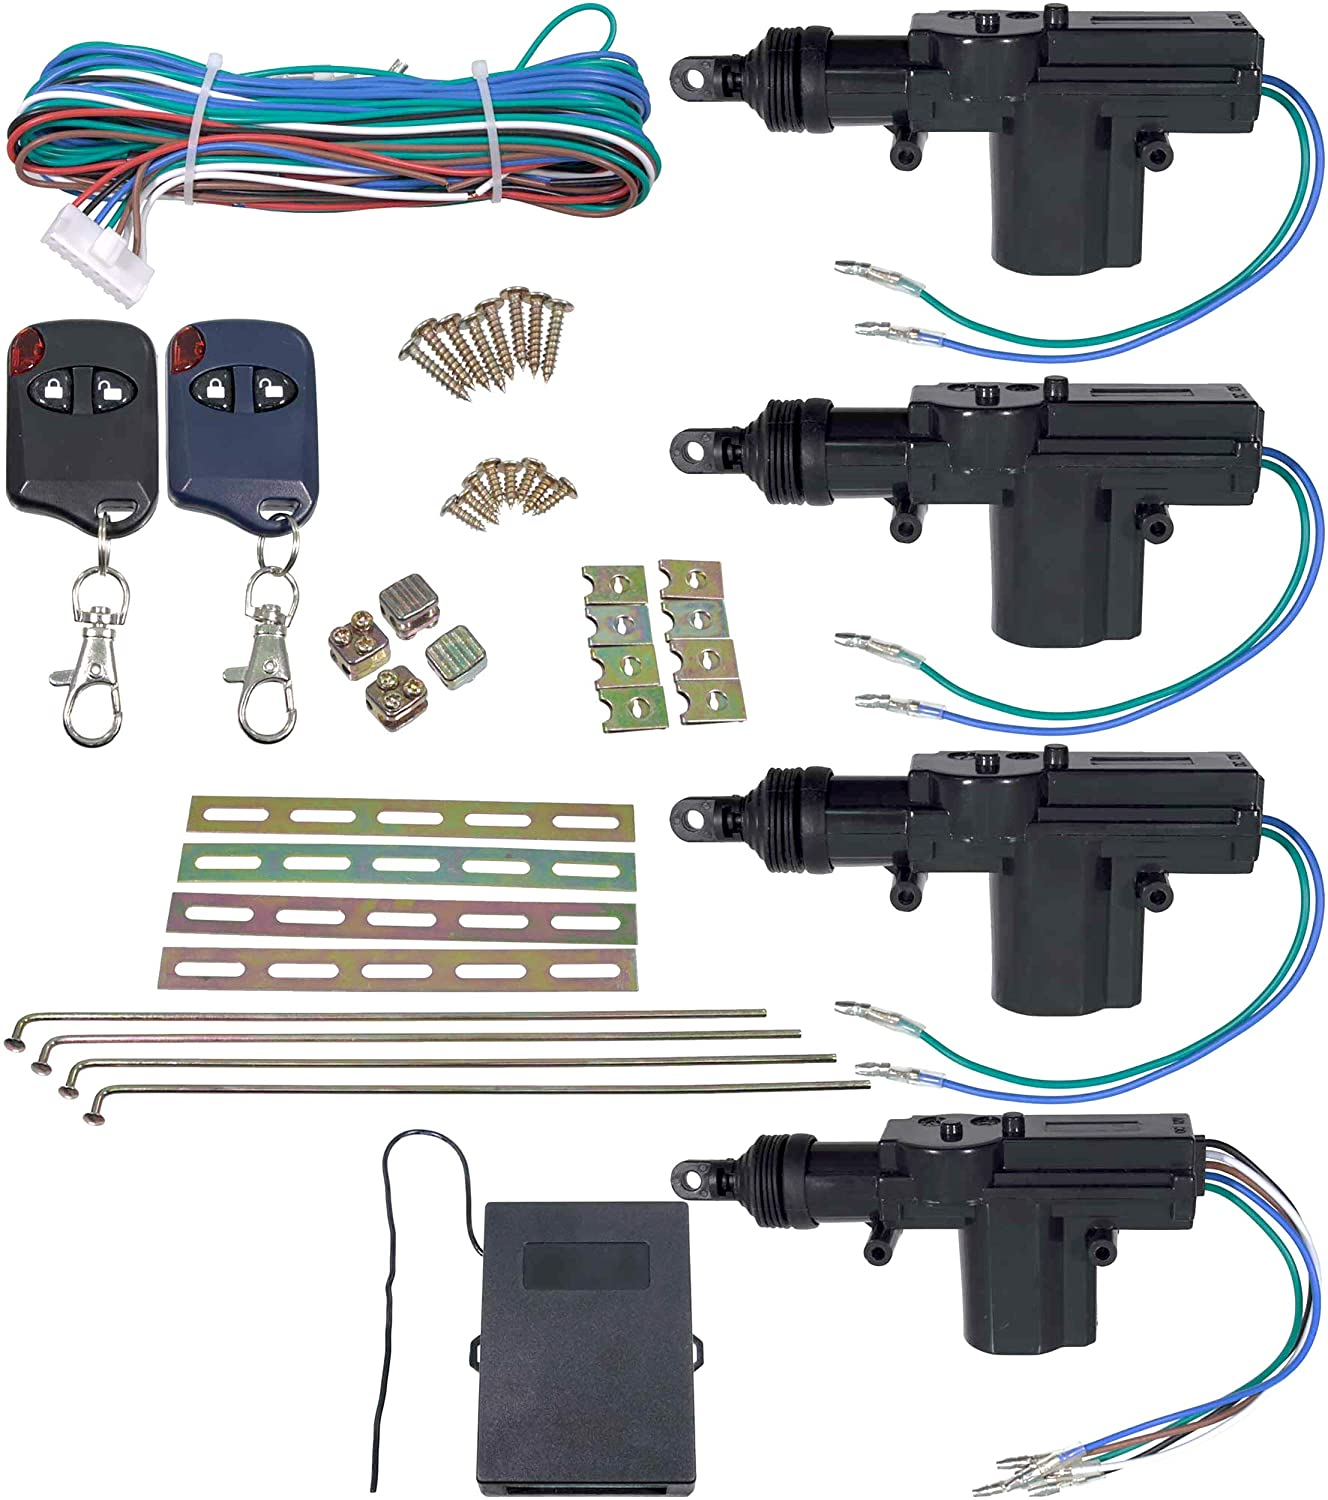 APDTY 133785 Universal Keyless Entry Remote Key Fob Door Lock Actuator Kit